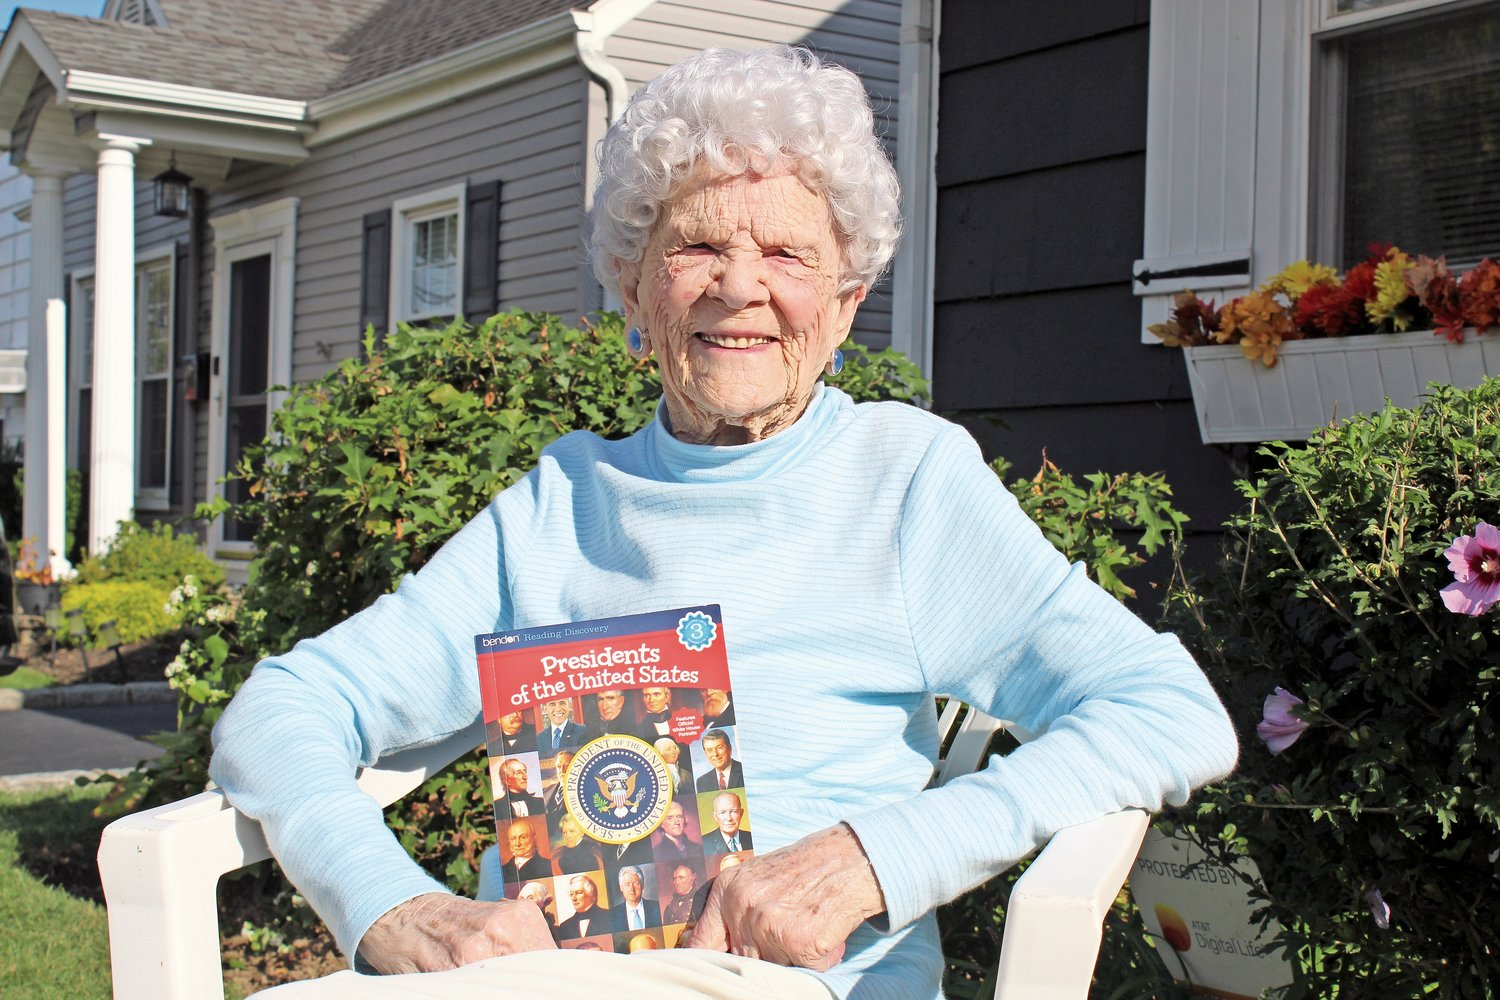 Merrick resident Lucille Munson, who will celebrate her 100th birthday next Wednesday, said she would make it a point to vote in person on Election Day.